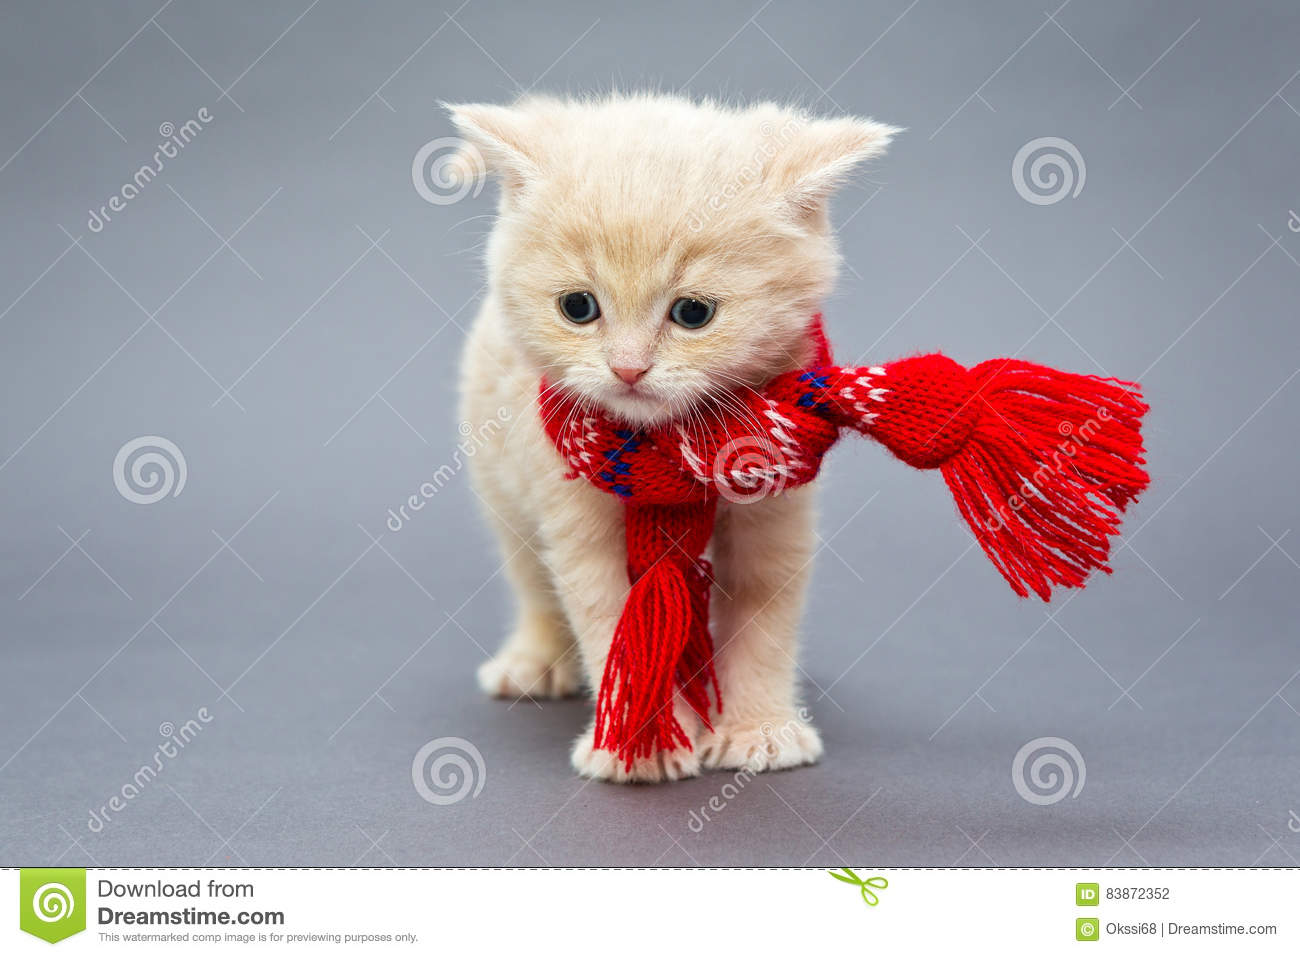 Kitten British breed with a scarf